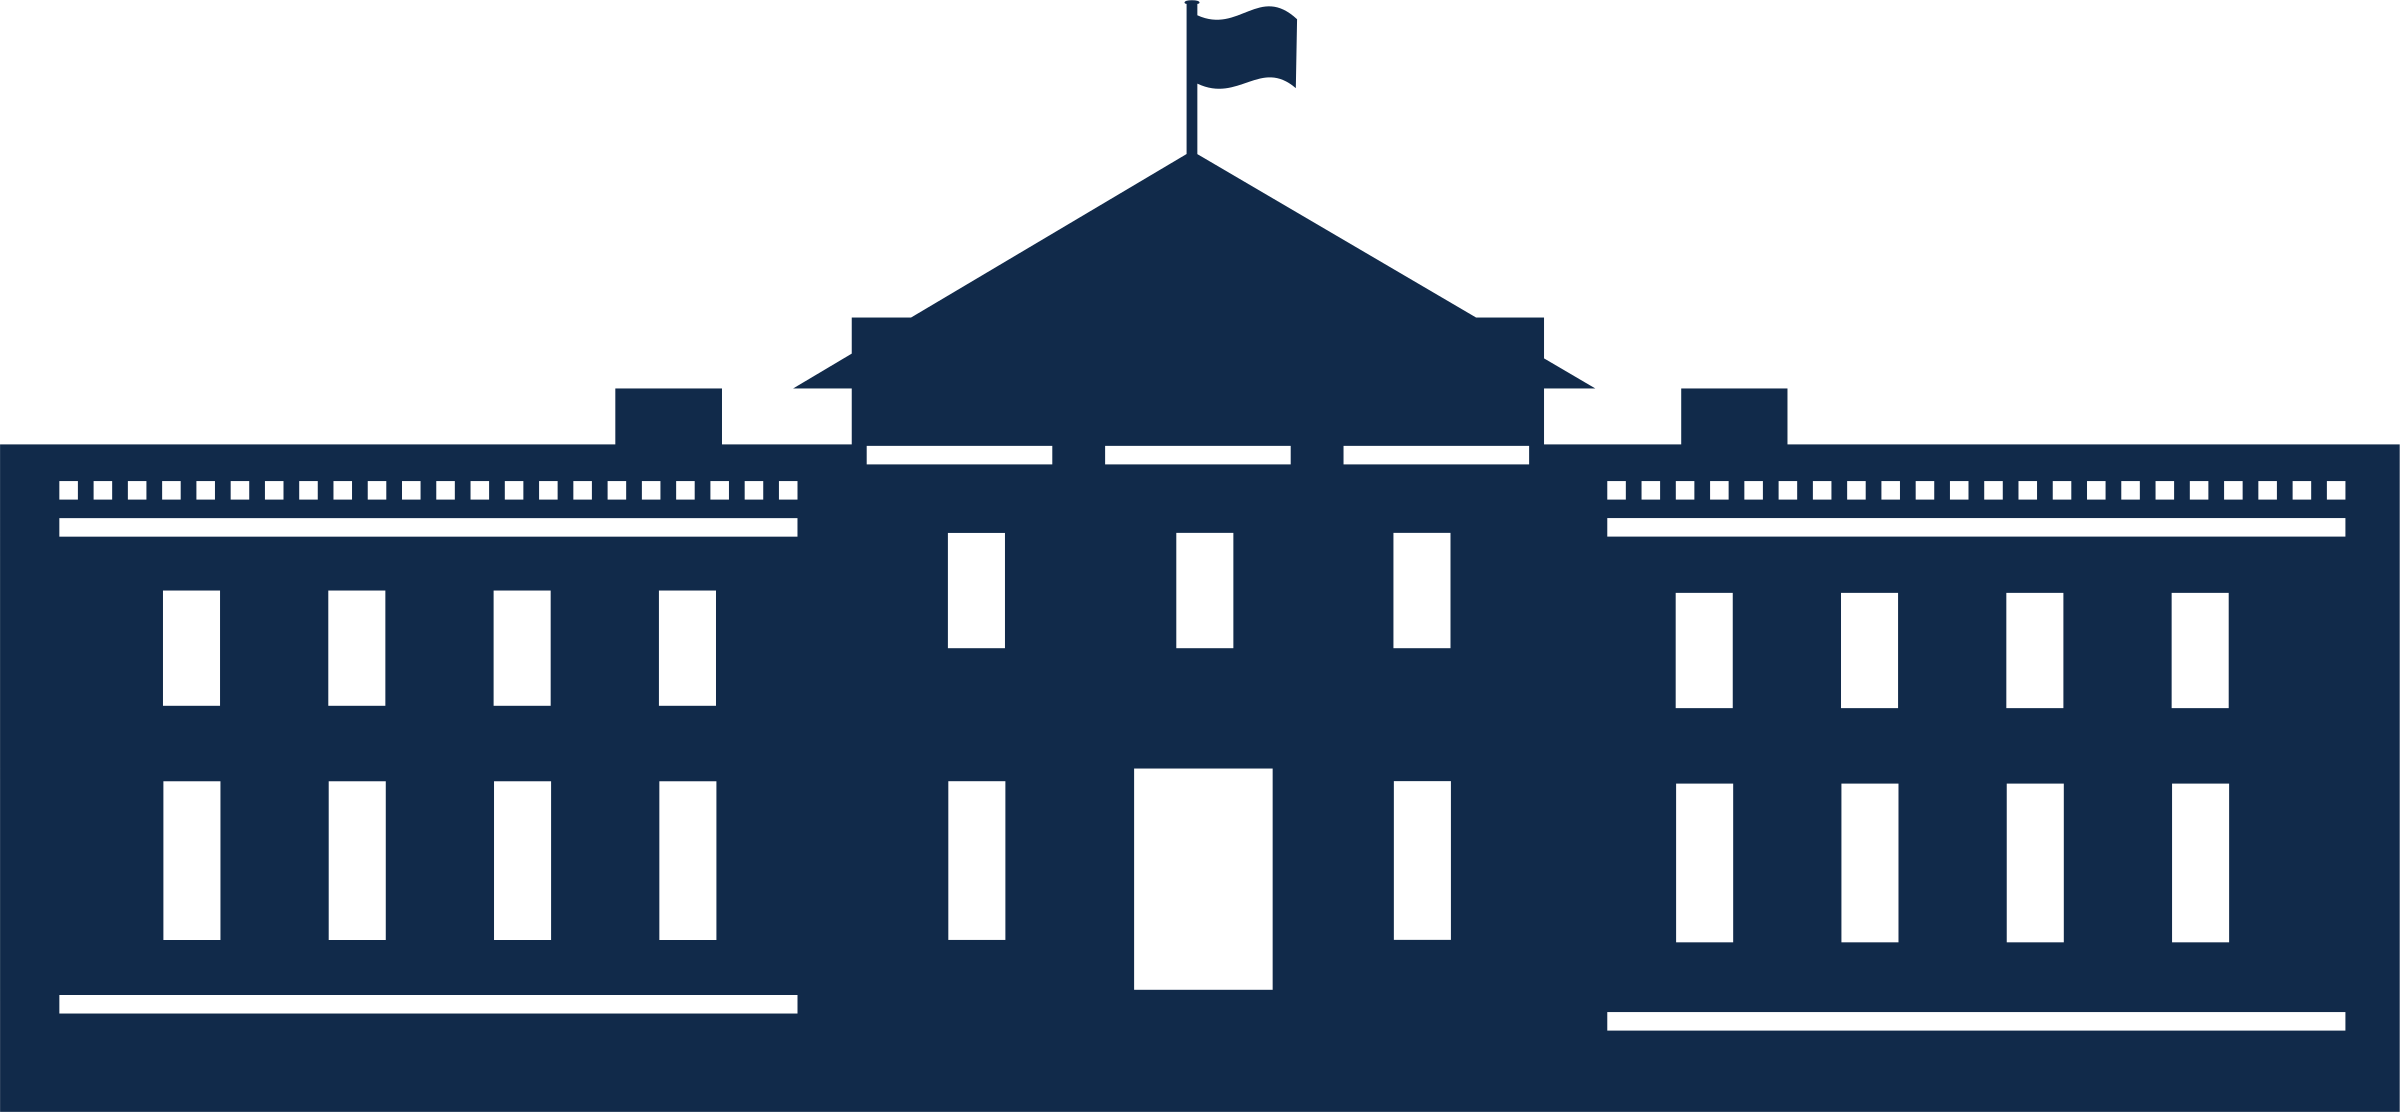 Clipart white house vector library library Clipart - Whitehouse Silhouette vector library library